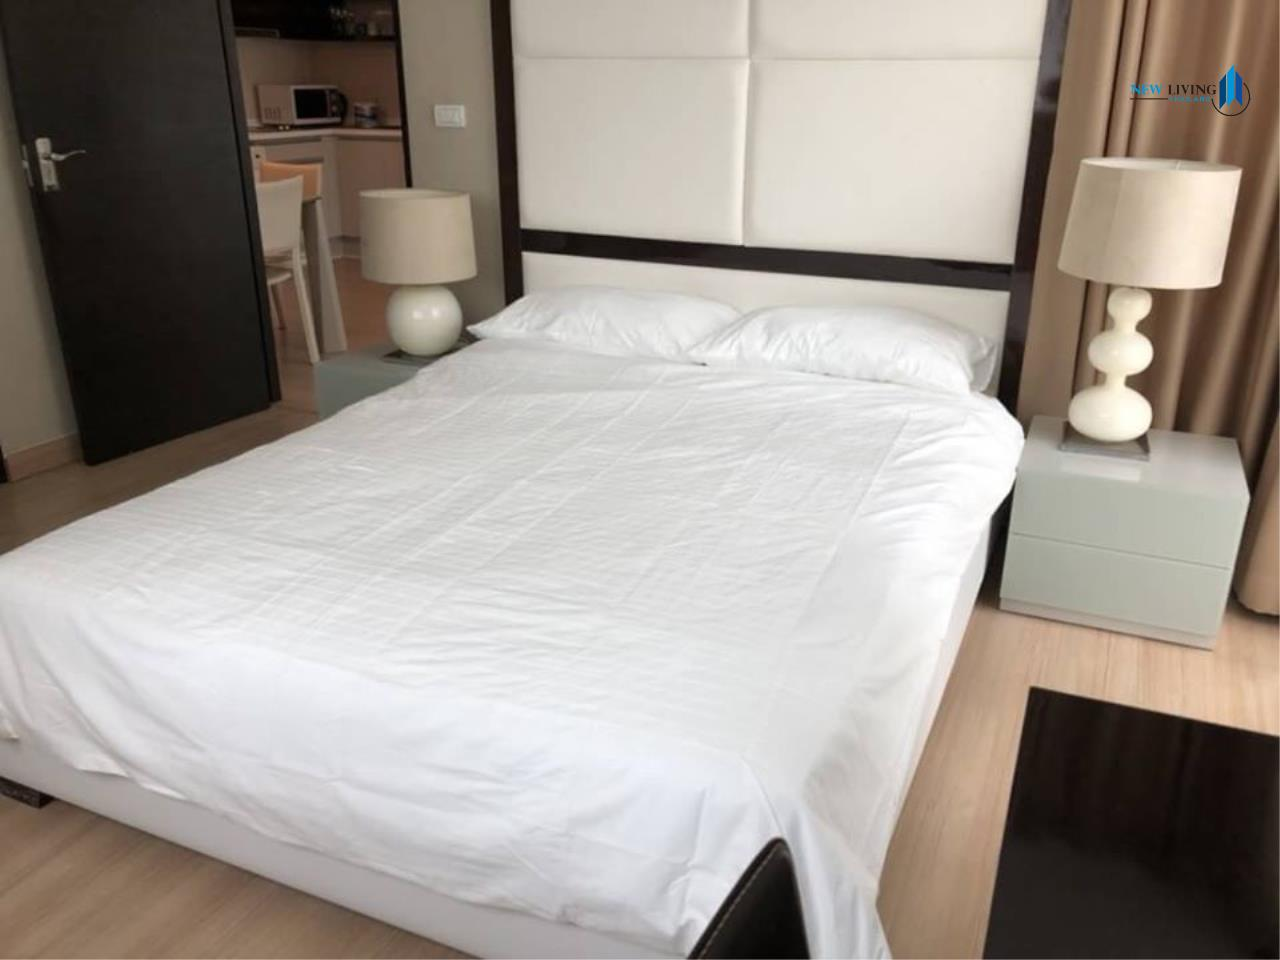 New Living Thailand Agency's For rent, The Address Pathumwan, near Ratchathewi BTS, 2 bedrooms, 60 sq.m., east, fully furnished 3